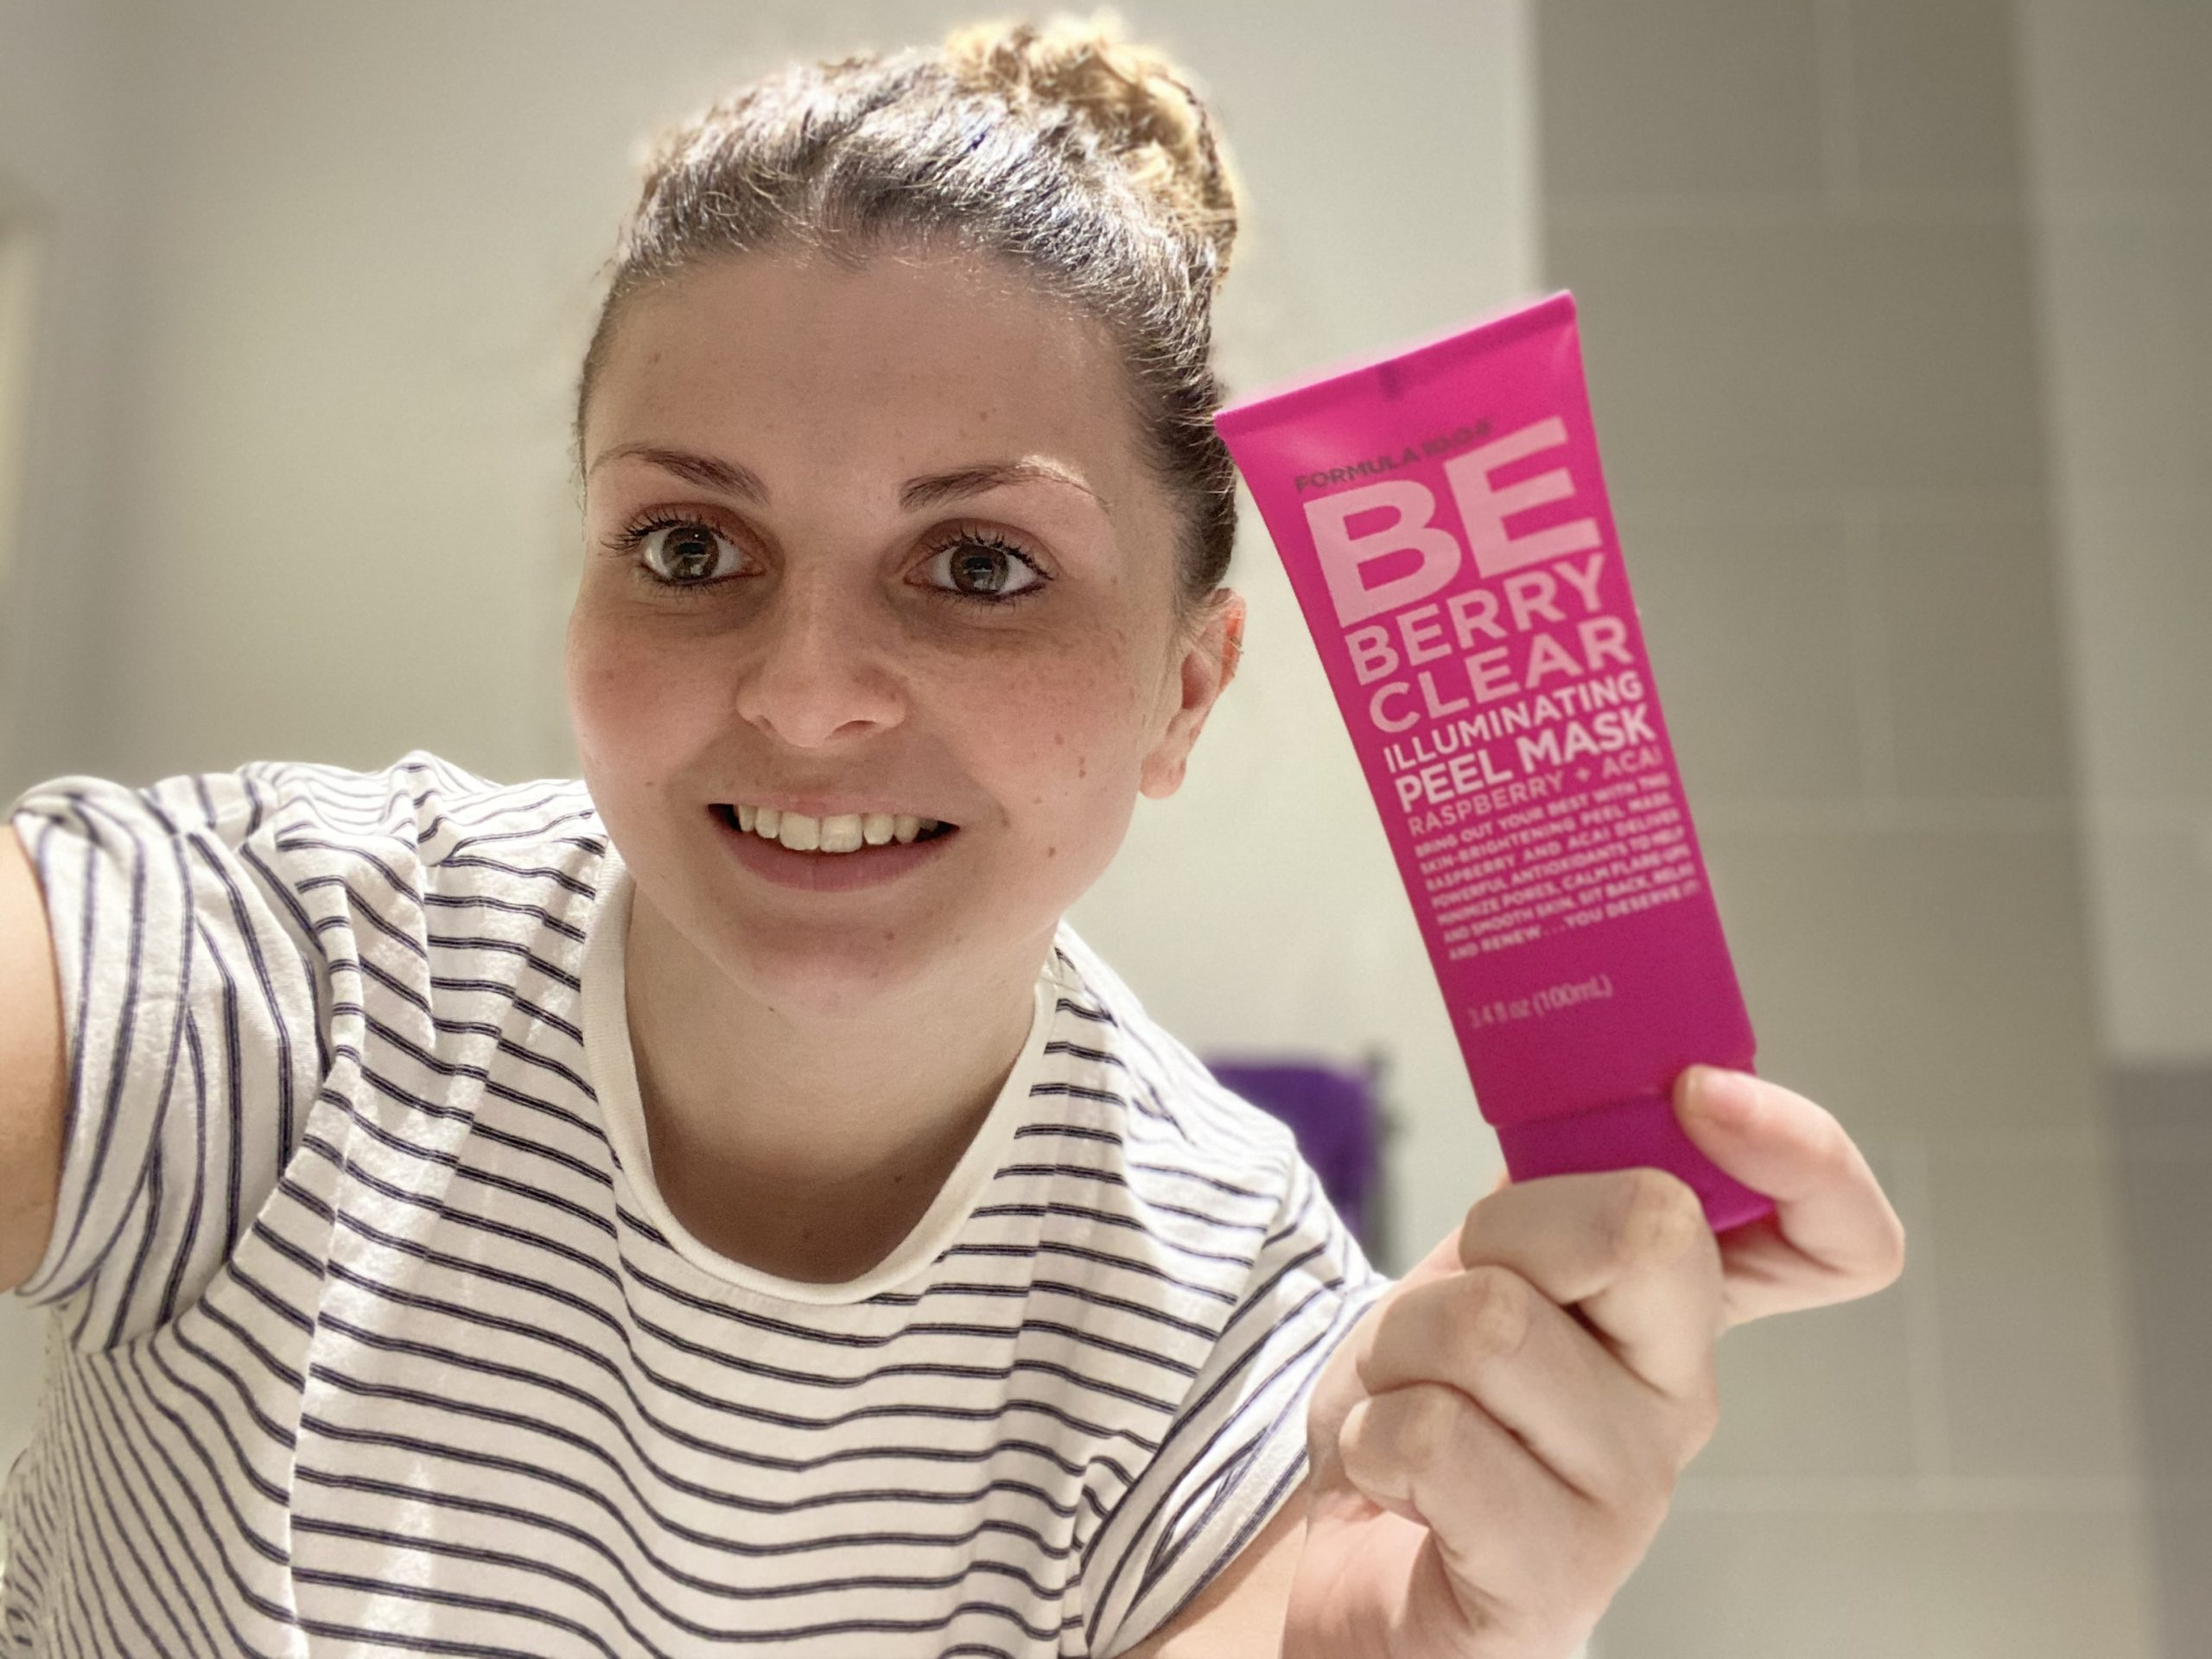 Formula 10.0.6 Be Berry Clear Illuminating Peel Mask Review graphic